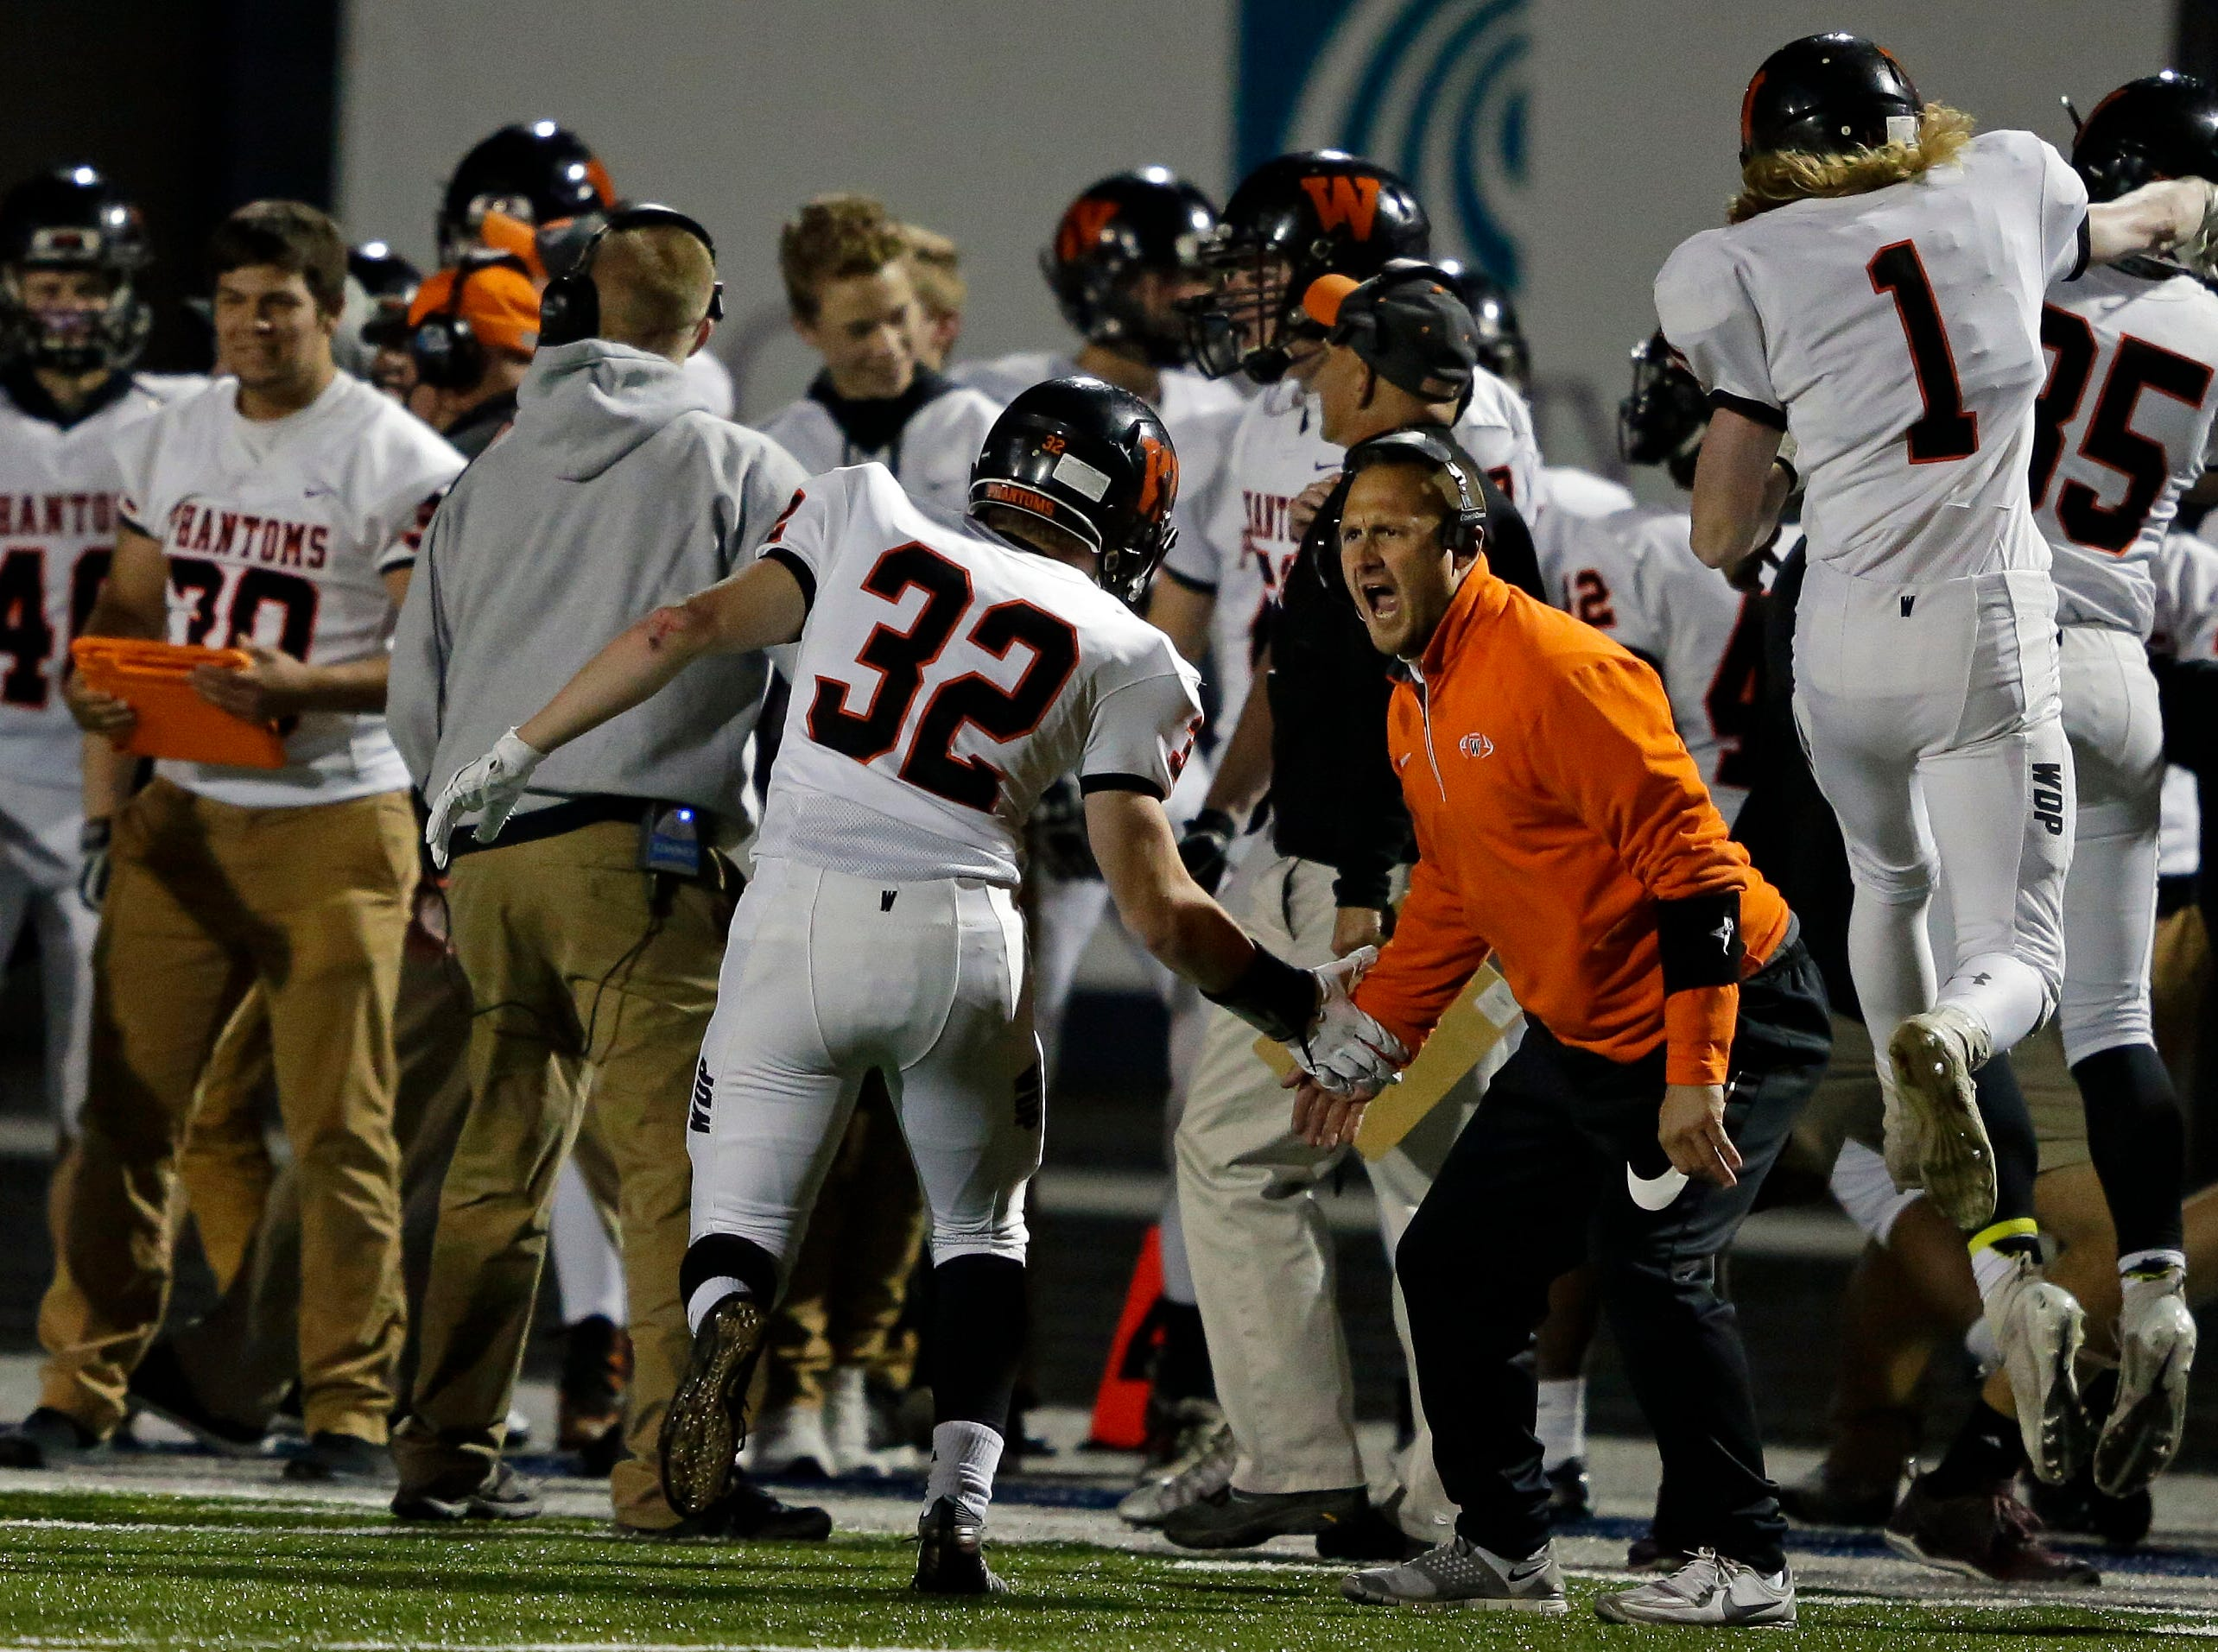 West De Pere players and coaches celebrate a fumble recovery against Menasha in a Bay Conference football game Friday, September 28, 2018, at Calder Stadium in Menasha, Wis.Ron Page/USA TODAY NETWORK-Wisconsin